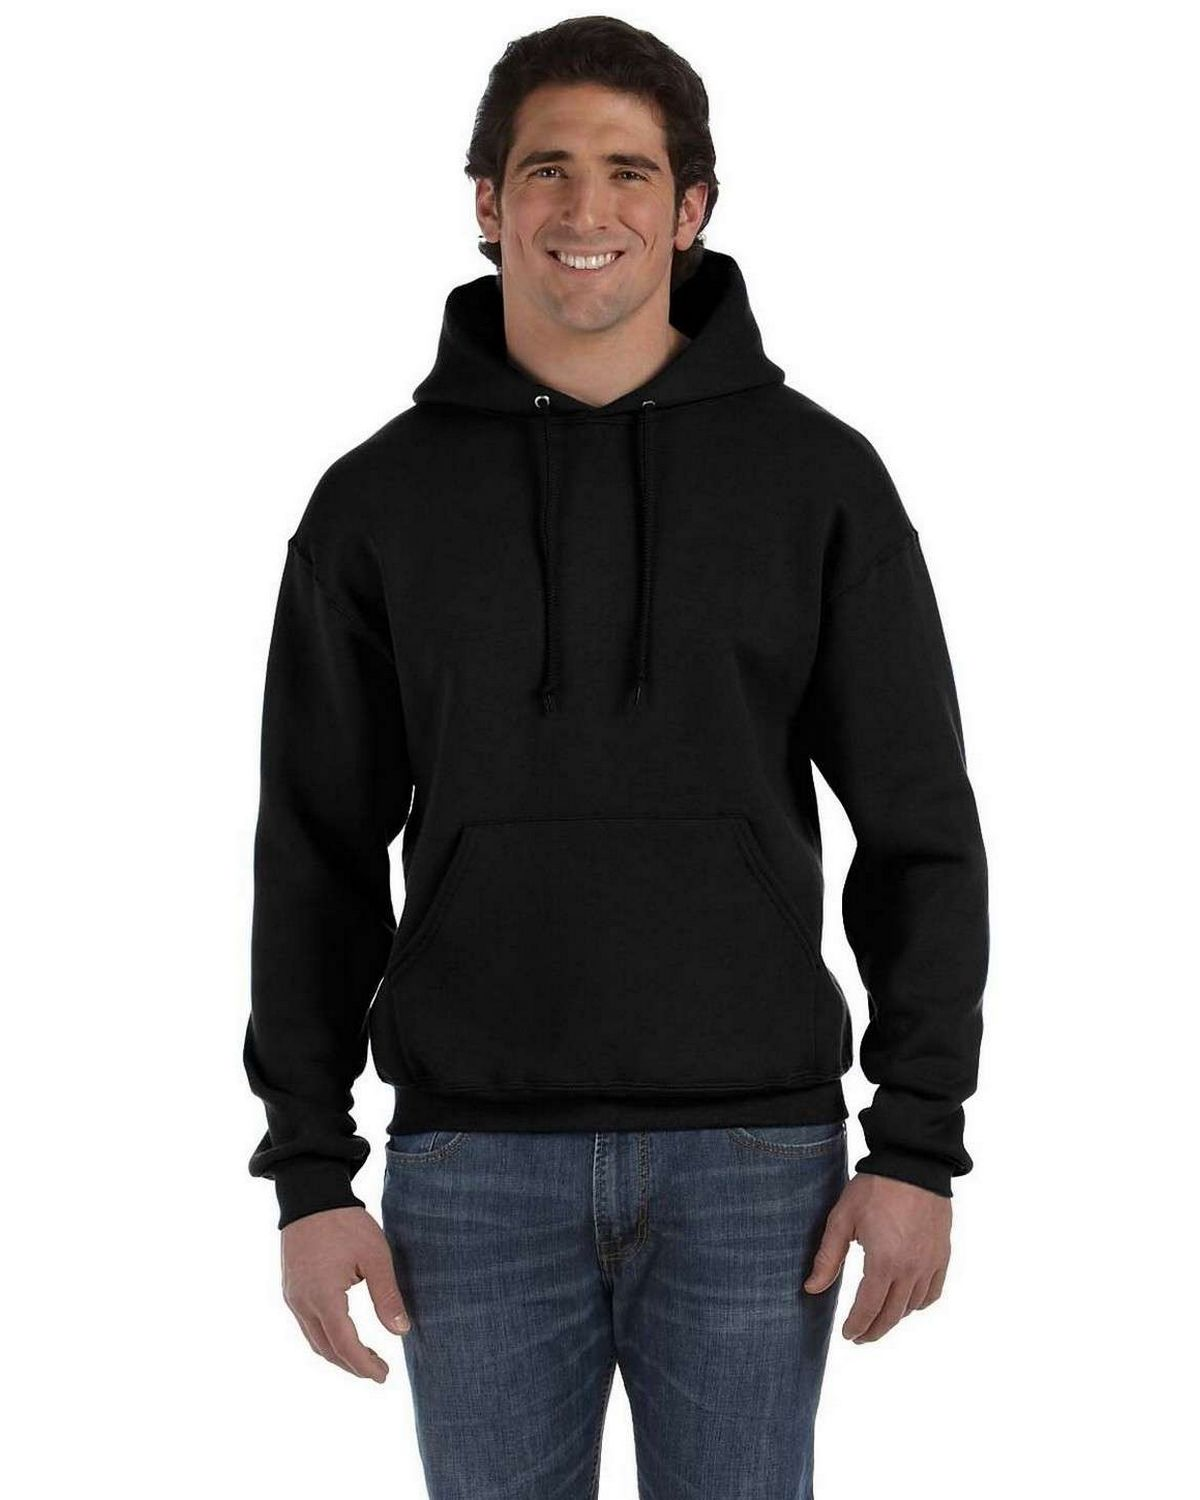 Fruit of the Loom 82130 Super Heavyweight 70/30 Hood - Black - S 82130